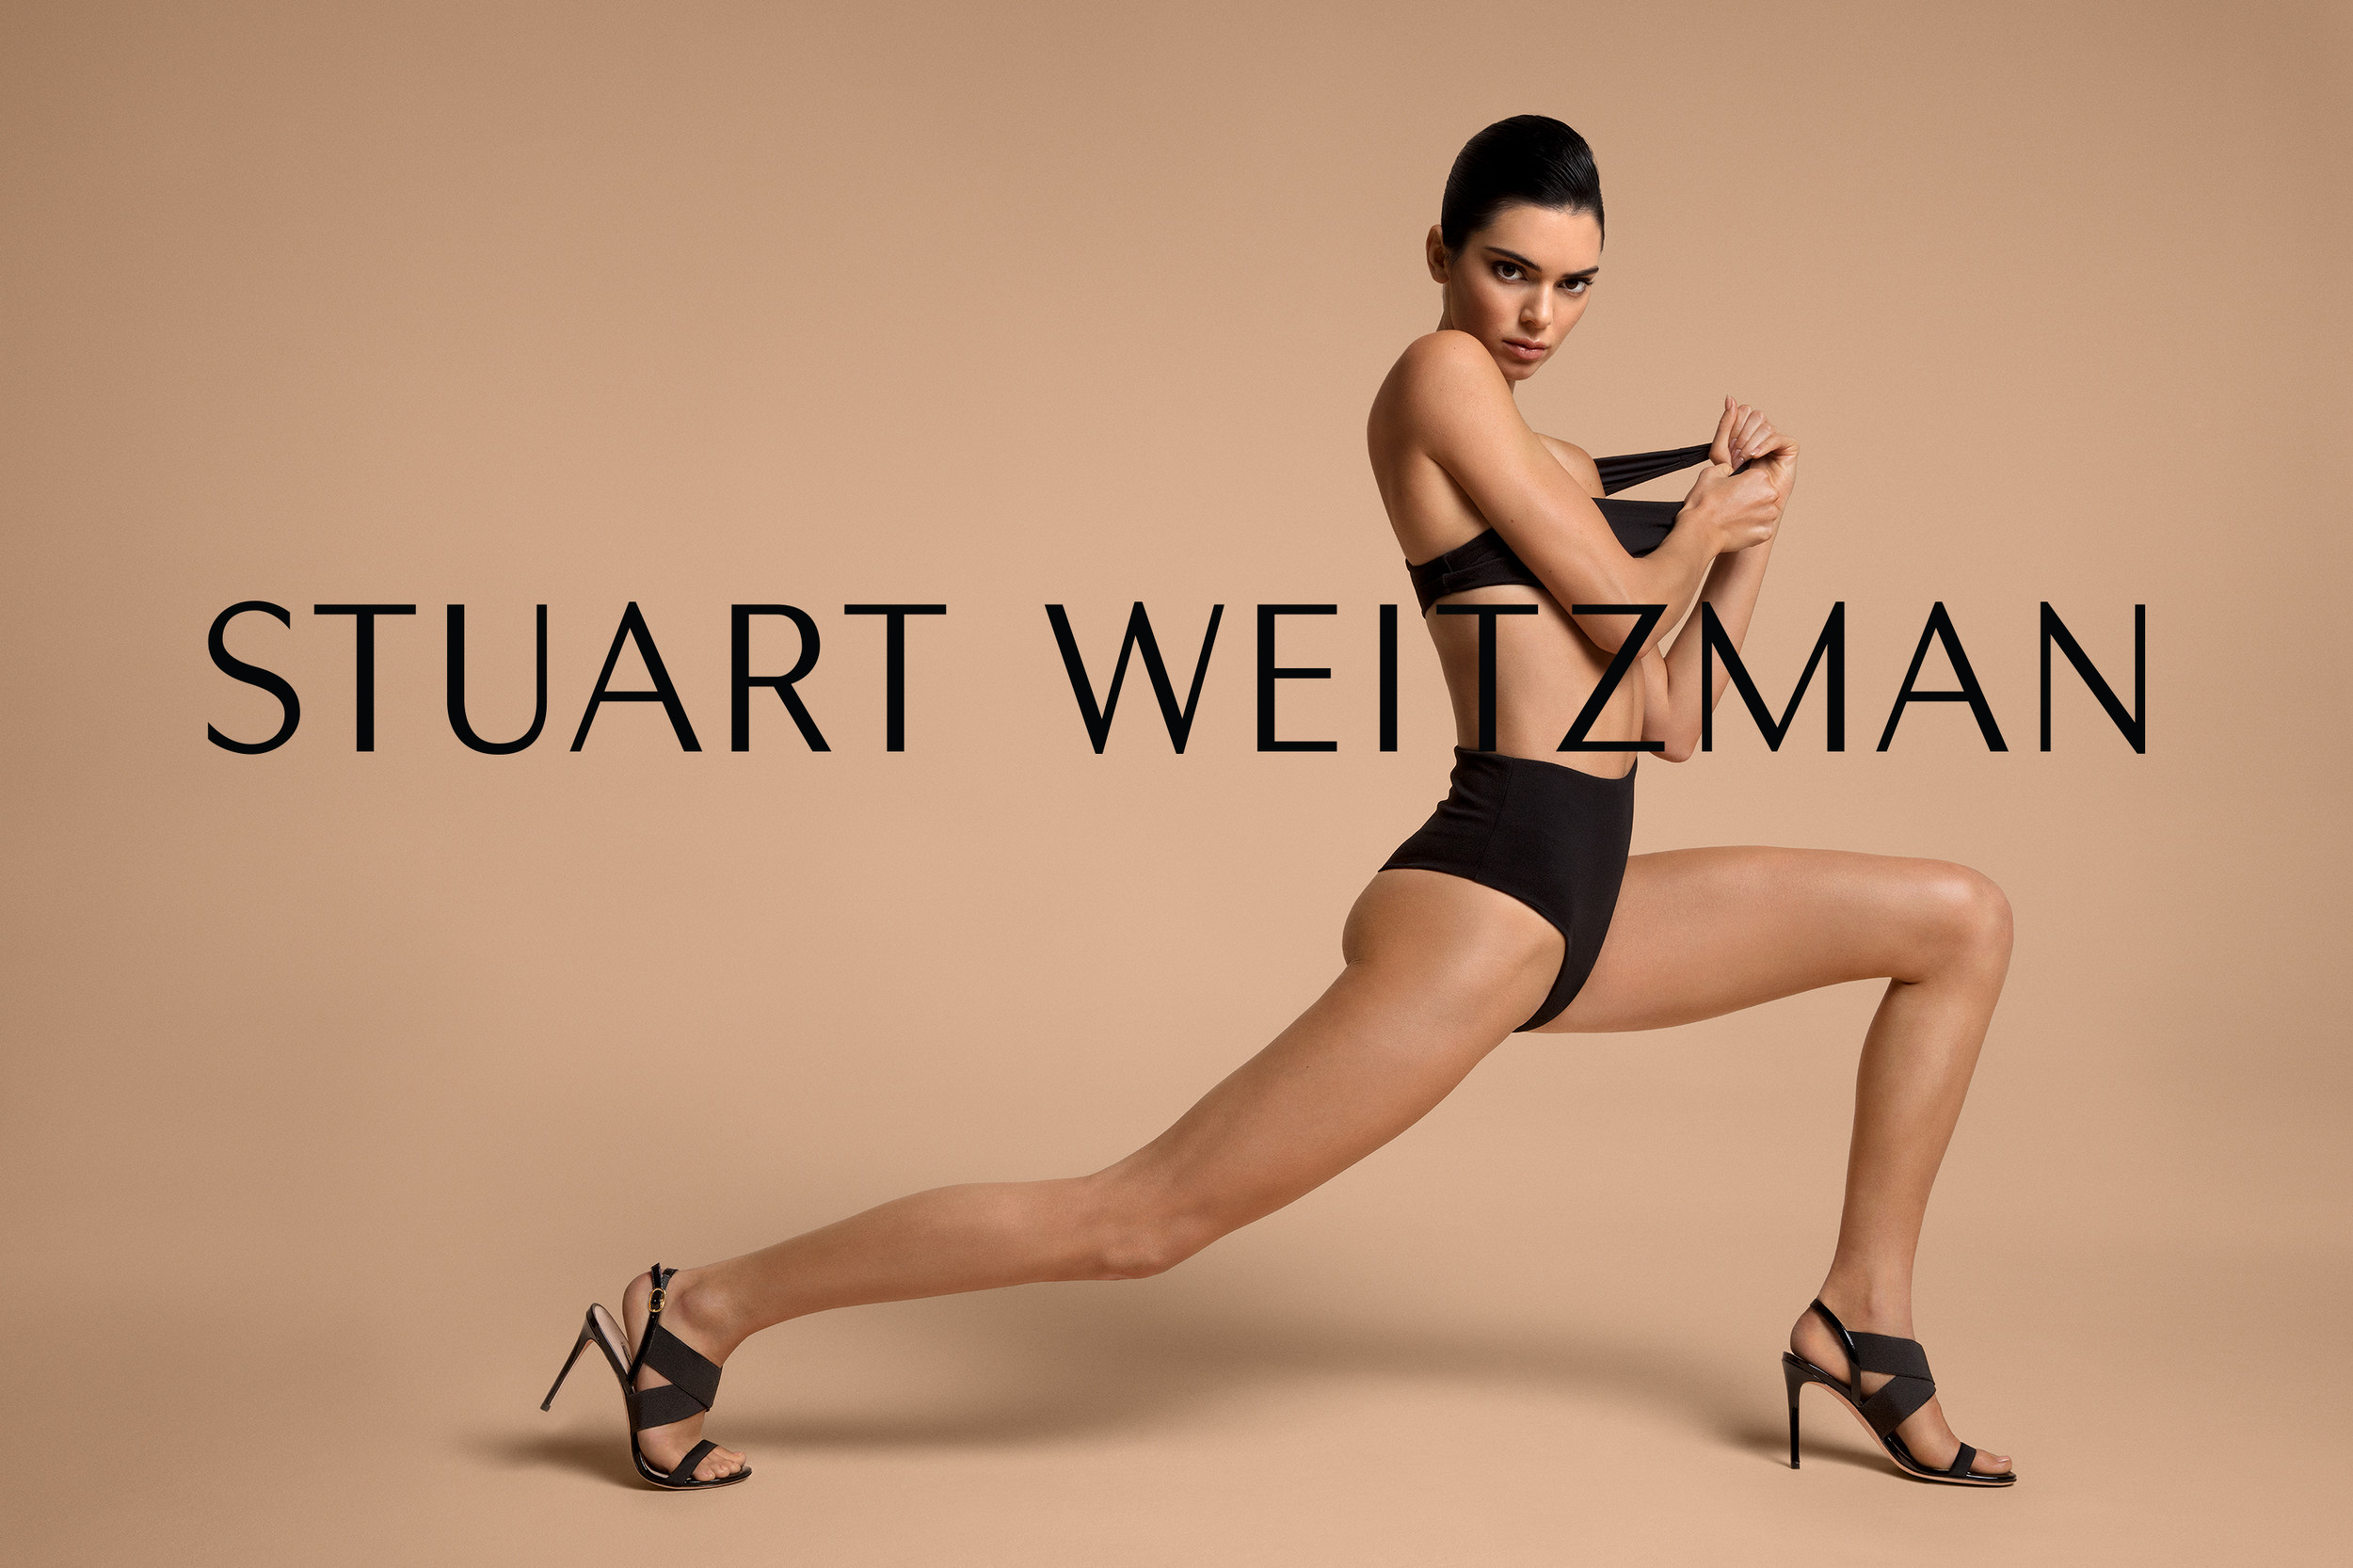 Kendall Jenner Strips Down and Proves How Flexible She Is in Her Latest Campaign